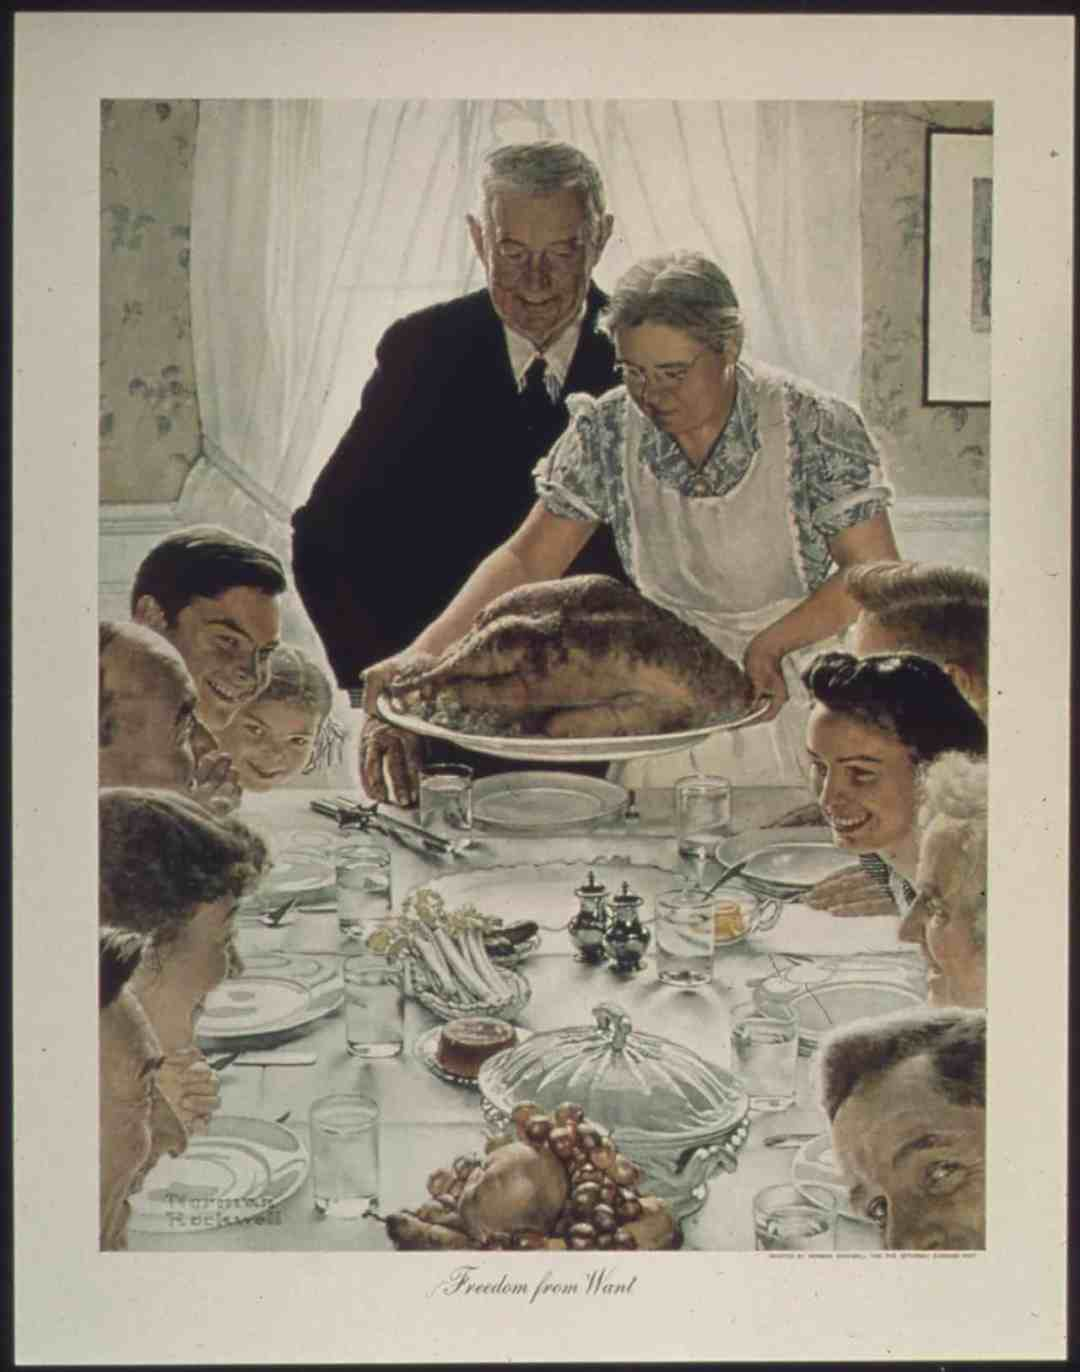 Norman Rockwell, Freedom From Want, 1943Norman Rockwell Museum